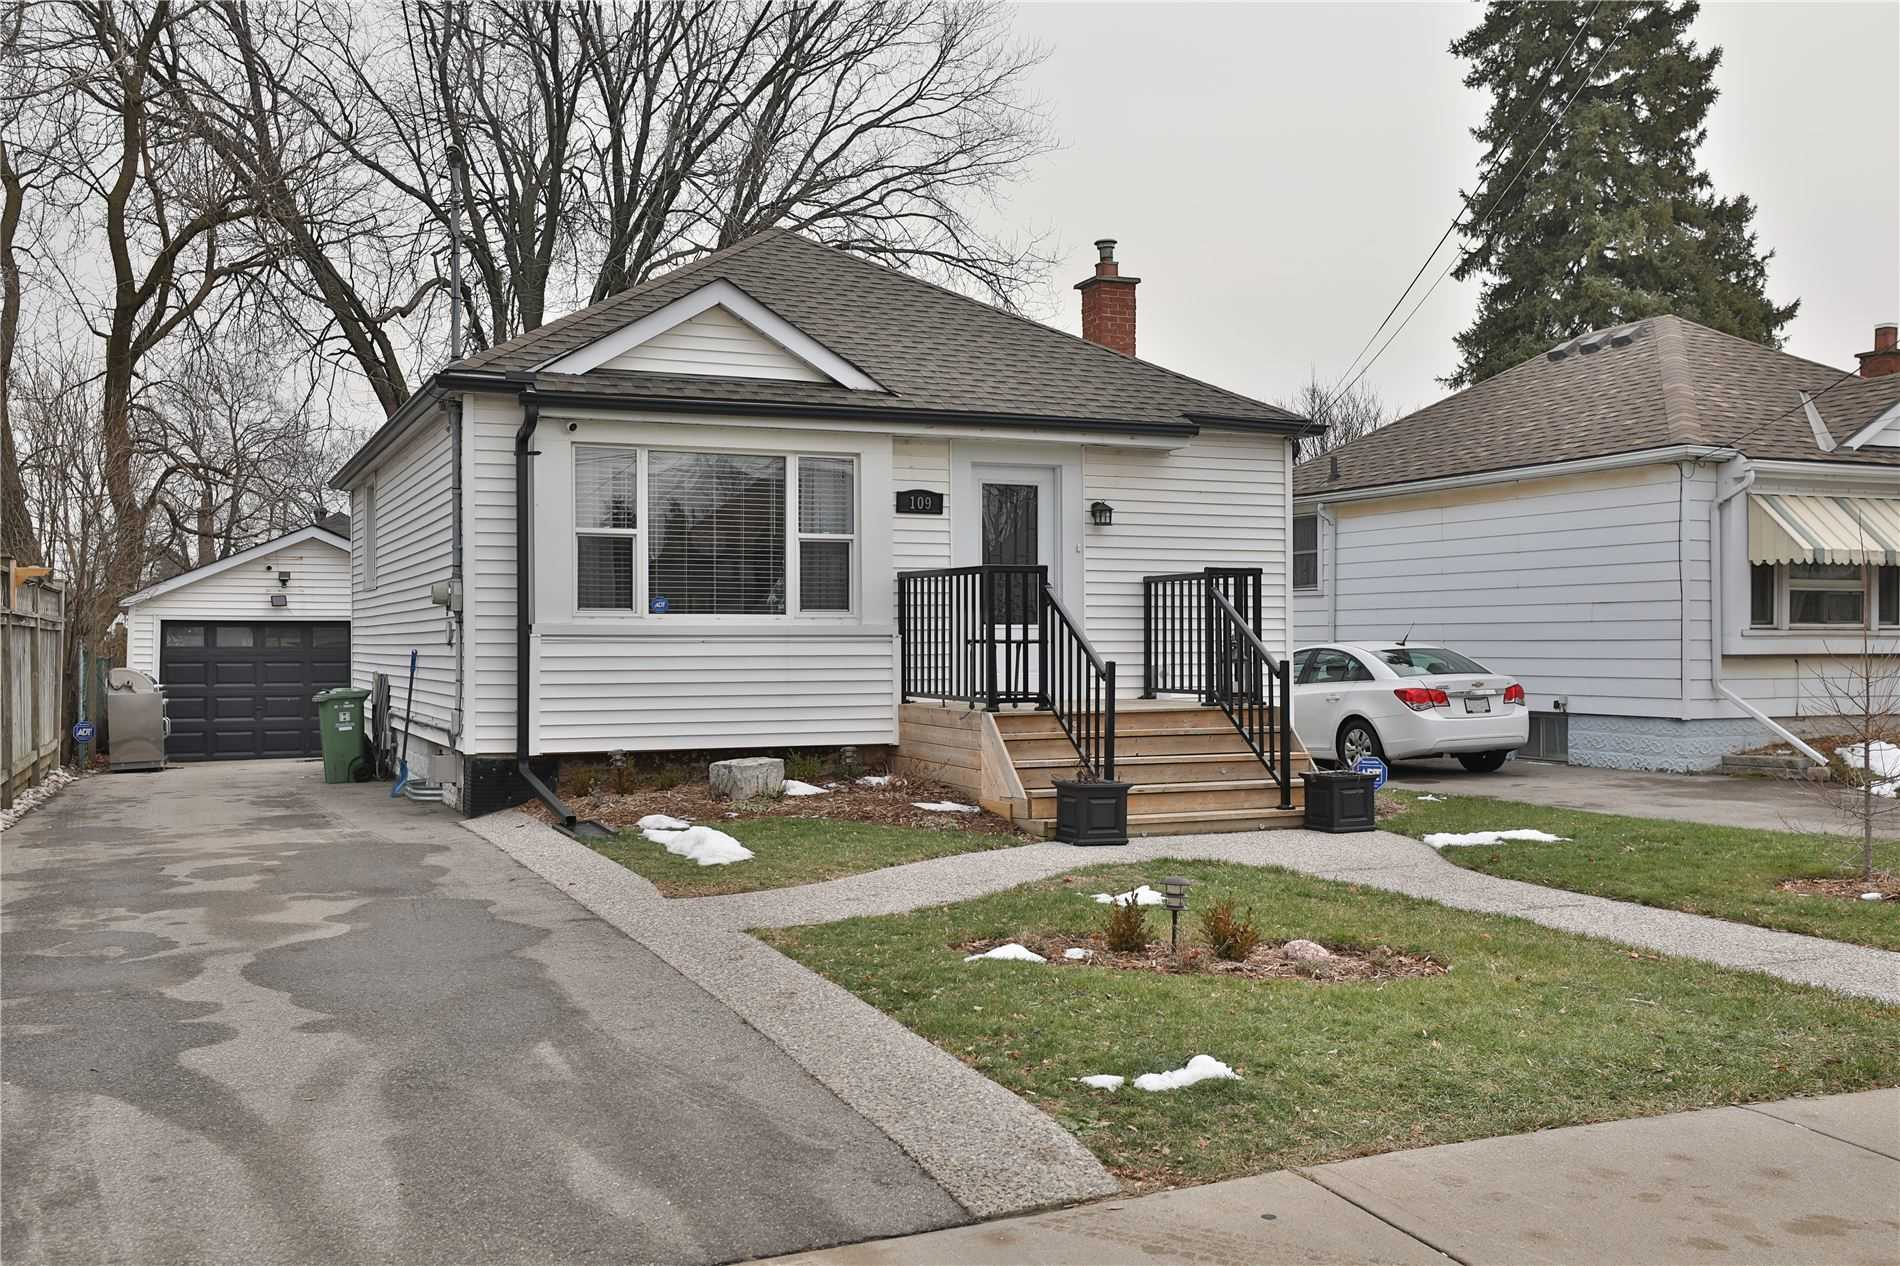 pictures of house for sale MLS: X5085019 located at 109 East 38th St, Hamilton L8V4E8